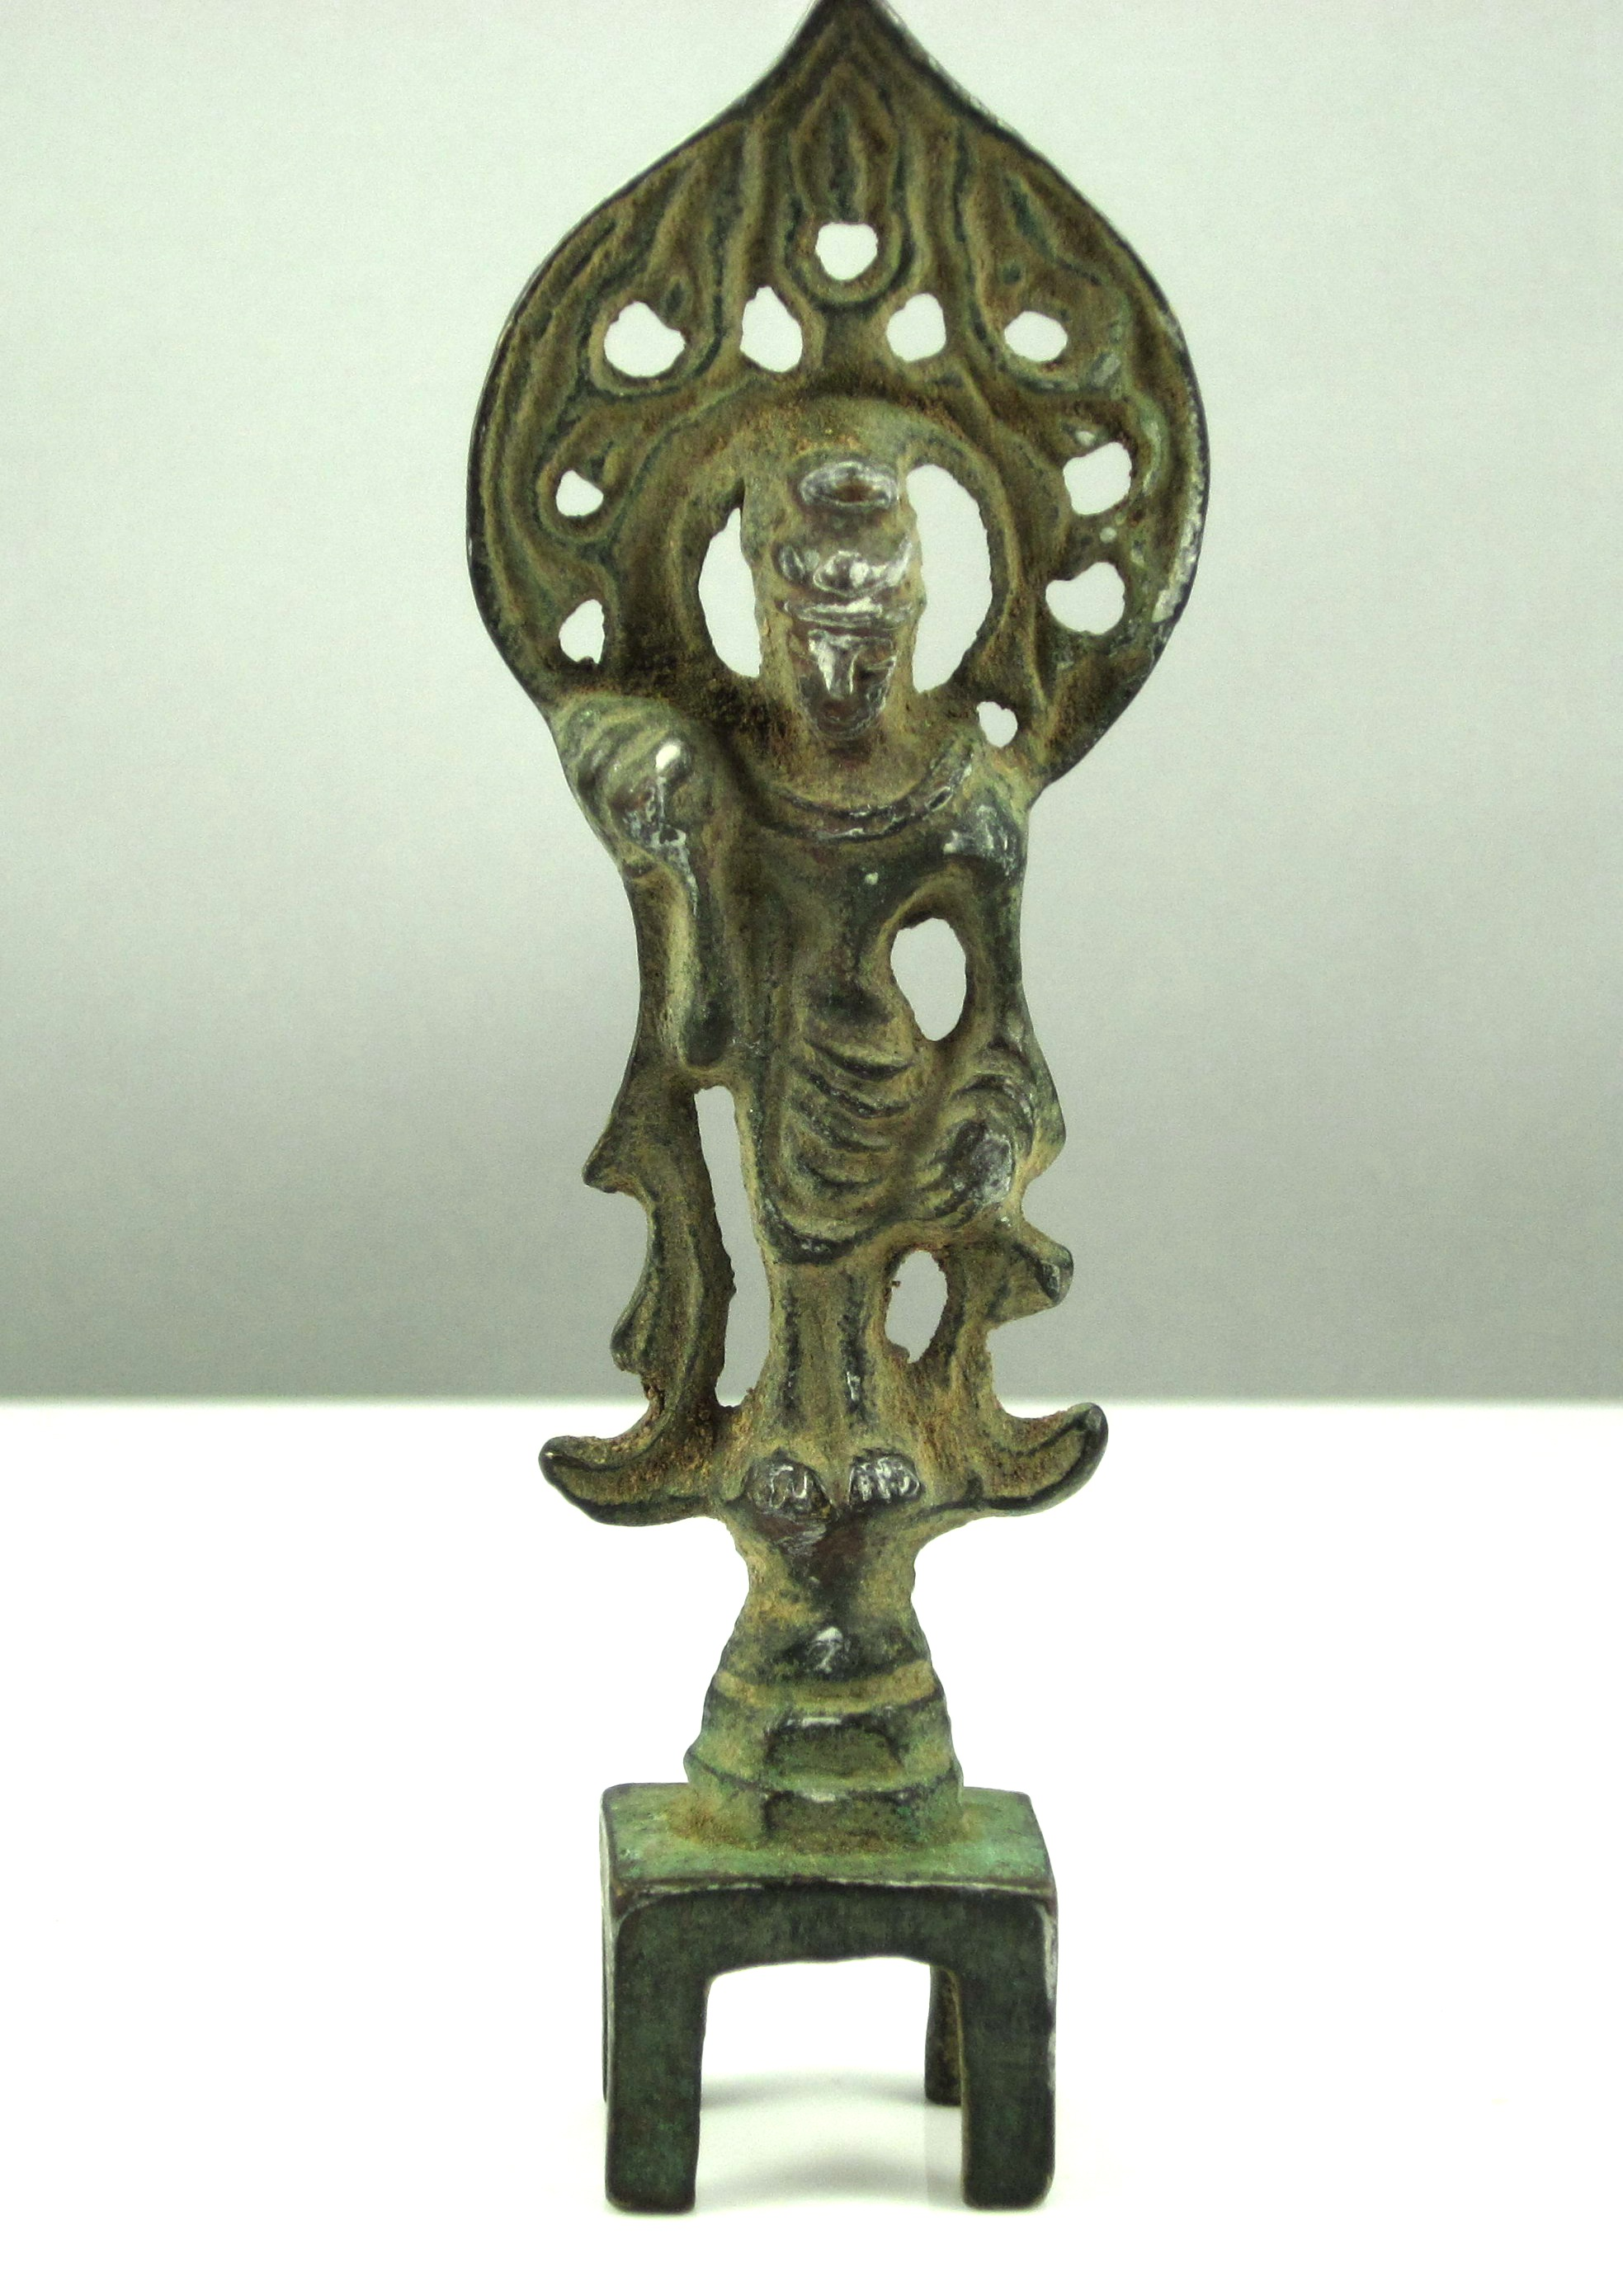 A5001, Bronze Figures of Buddha, China small size (a)